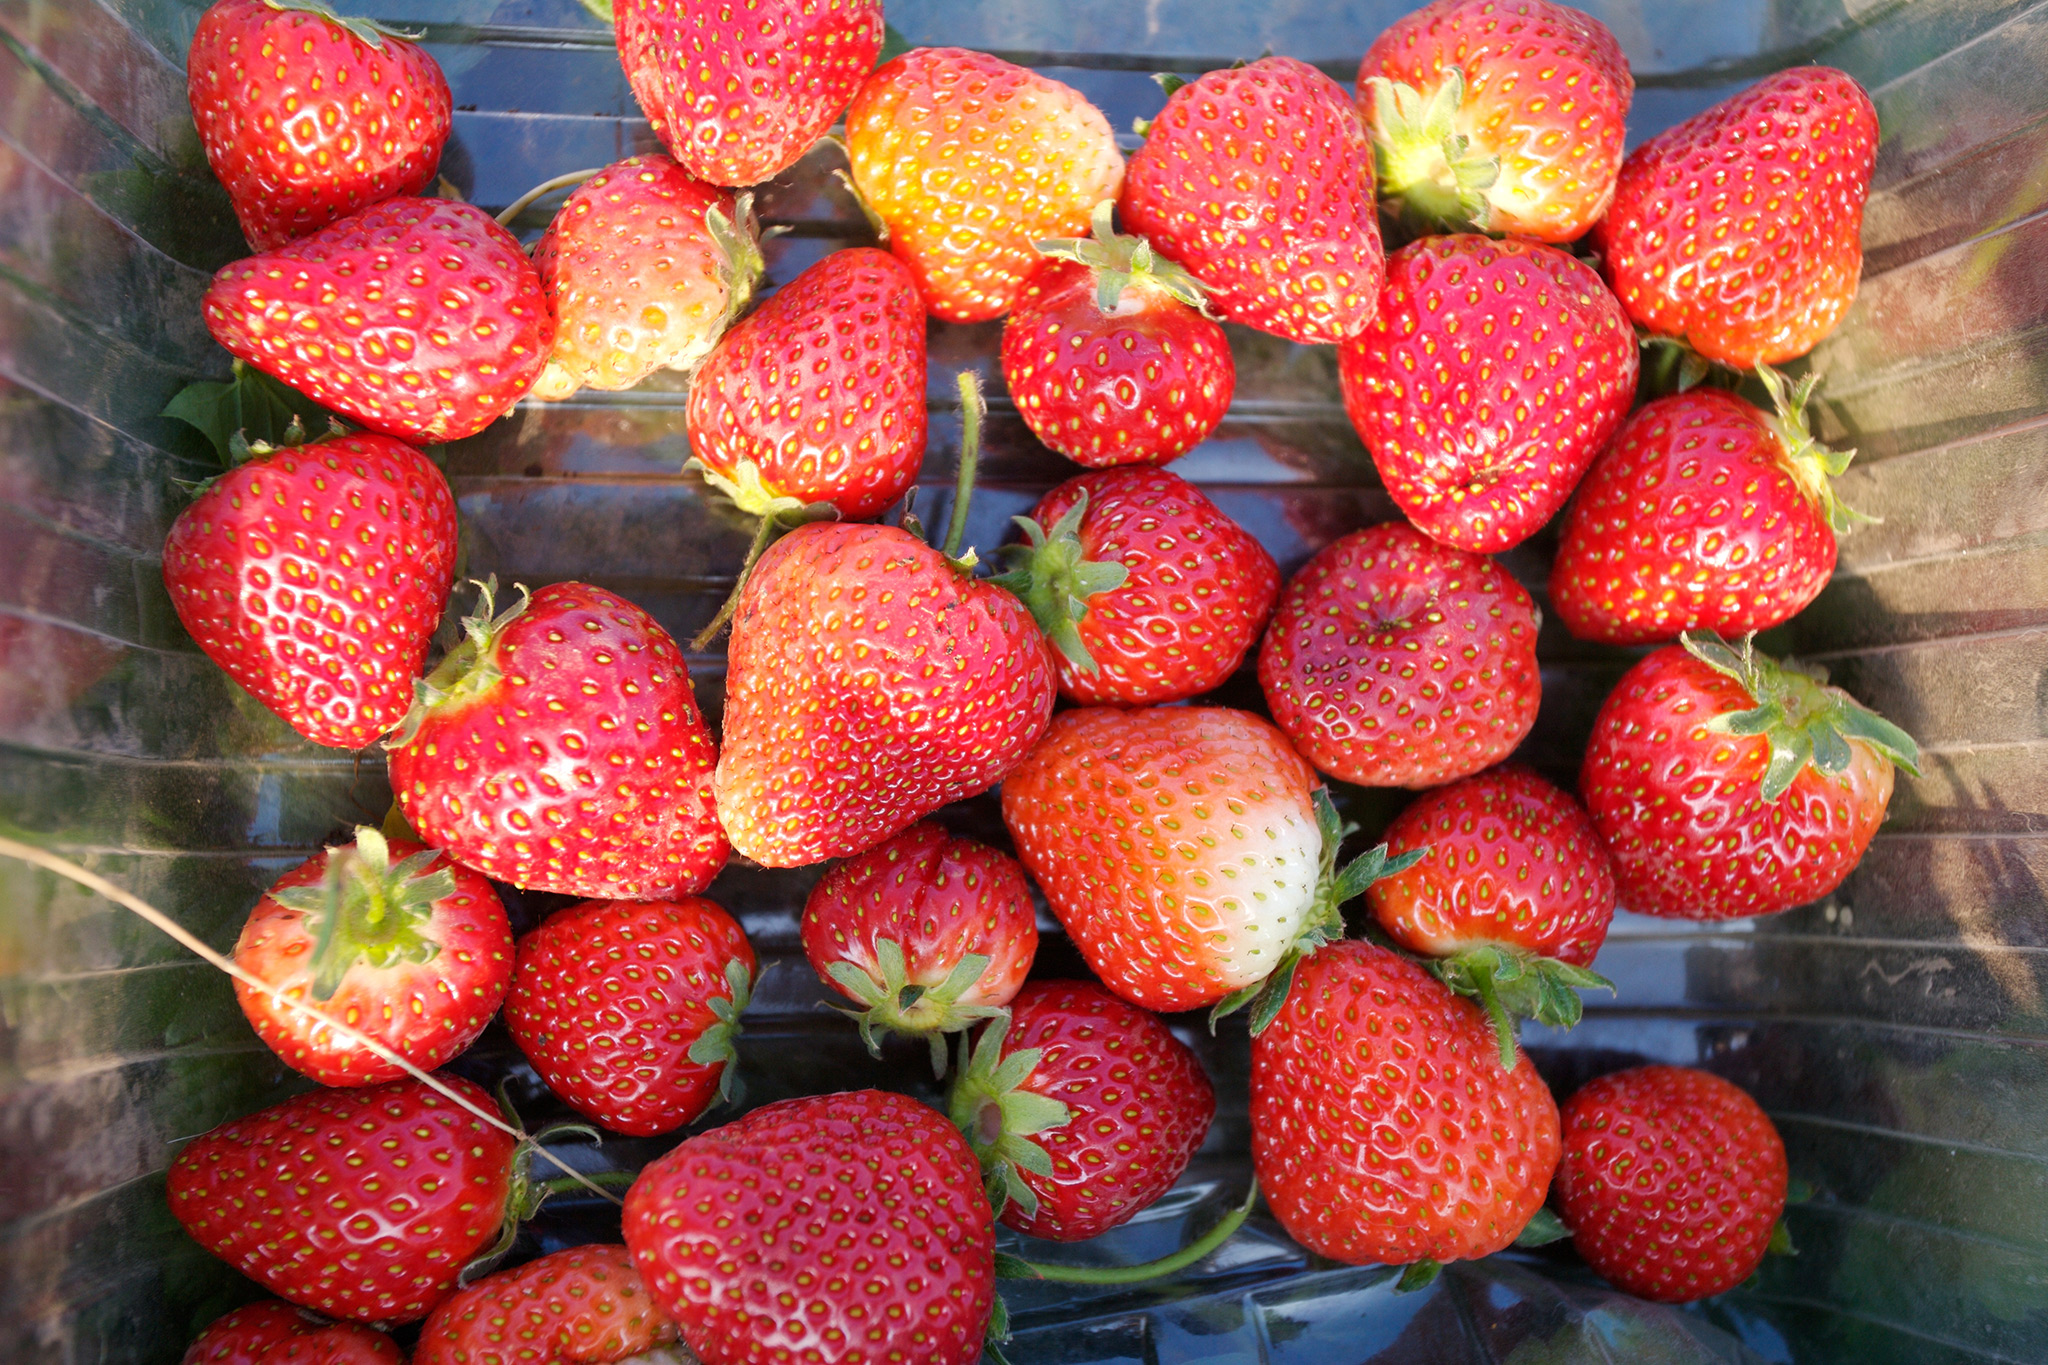 An early crop of strawberries